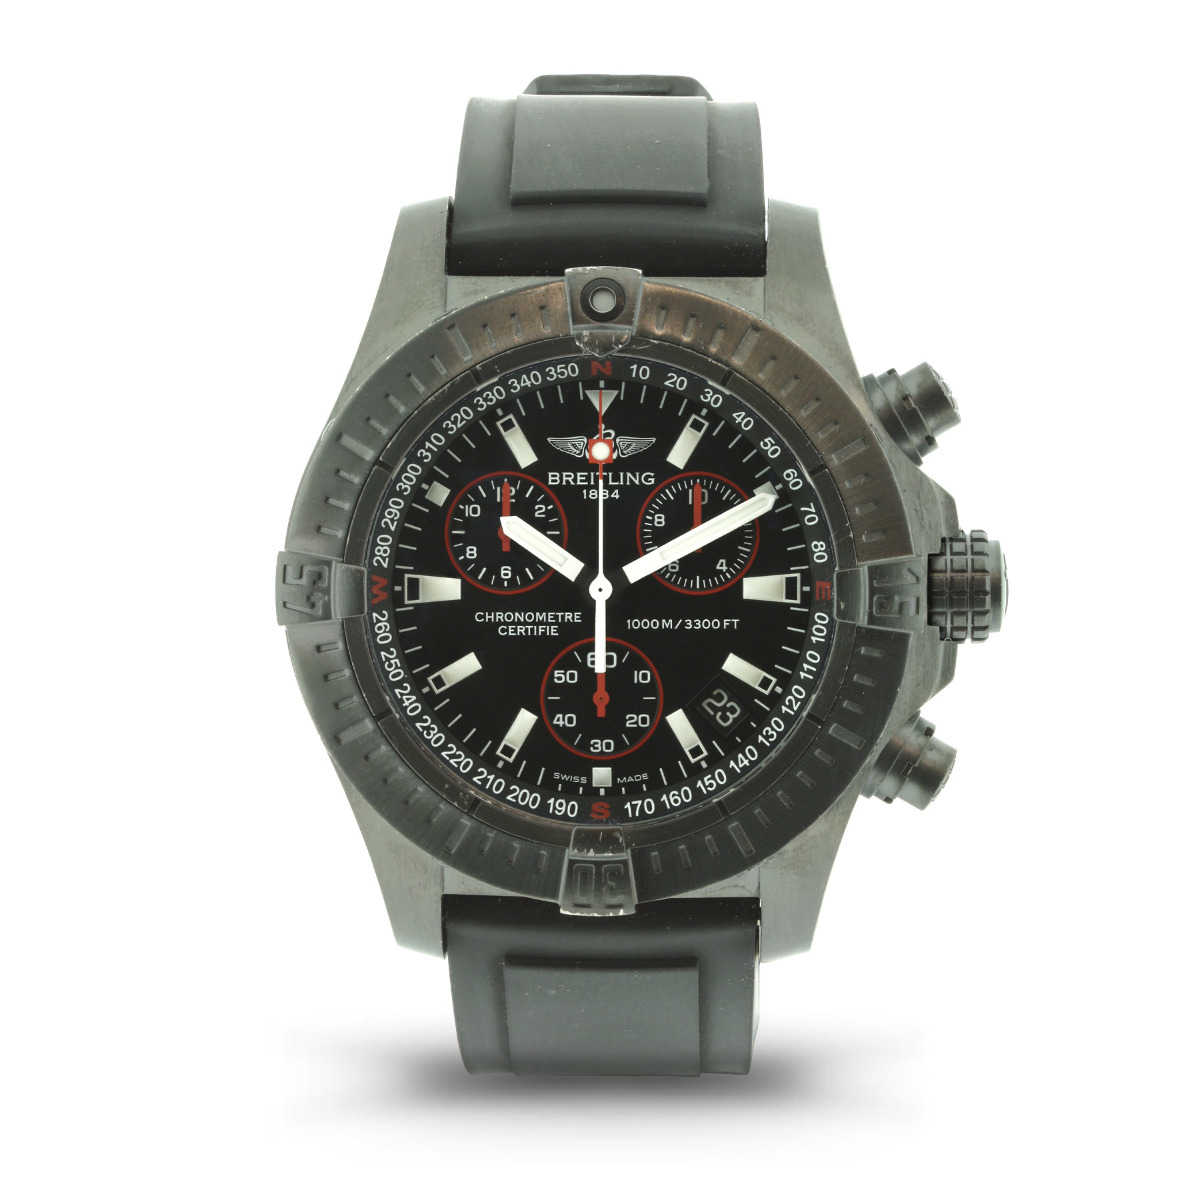 Breitling Avenger Seawolf Limited Edition